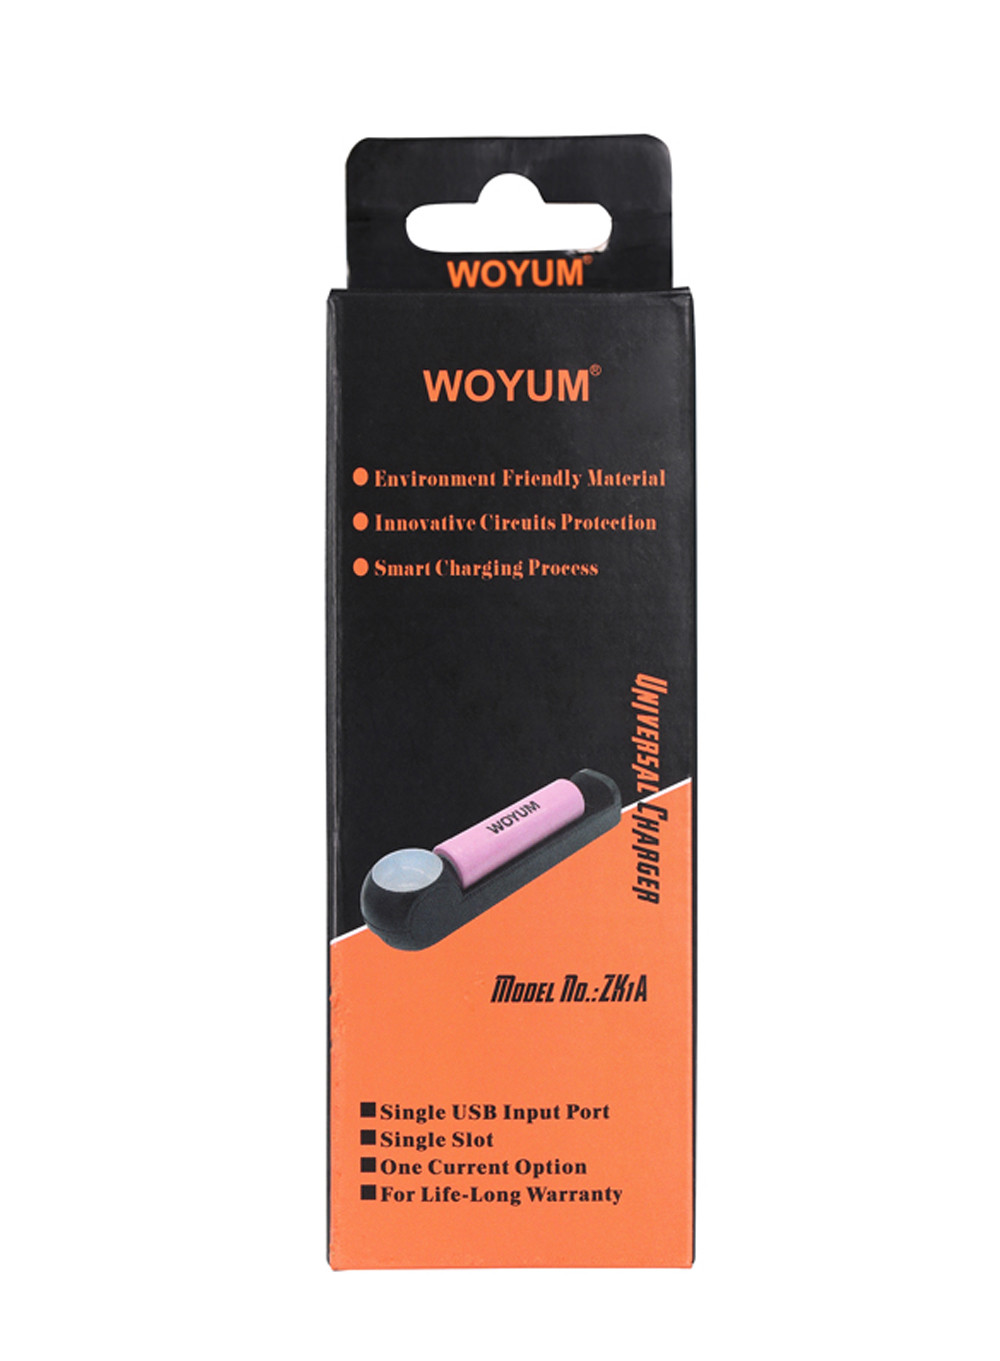 Woyum -Woyum Zk1a Usb Intelligent Auto Battery Charger 1 Slot-6